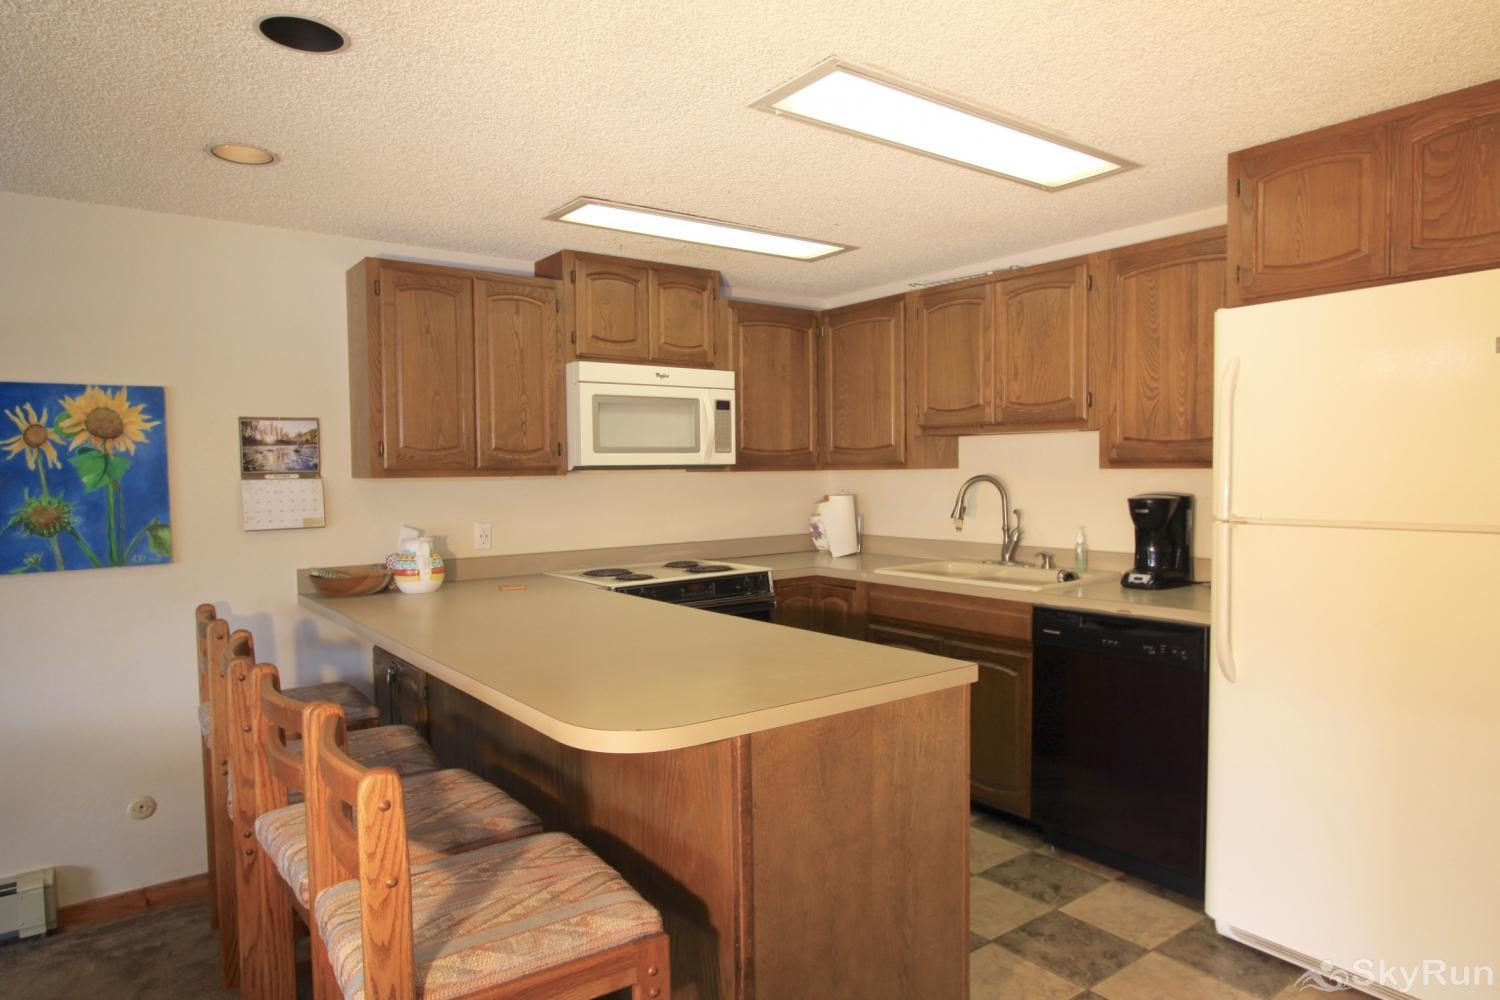 113AB WPTC - Cranmer Rd Main Kitchen